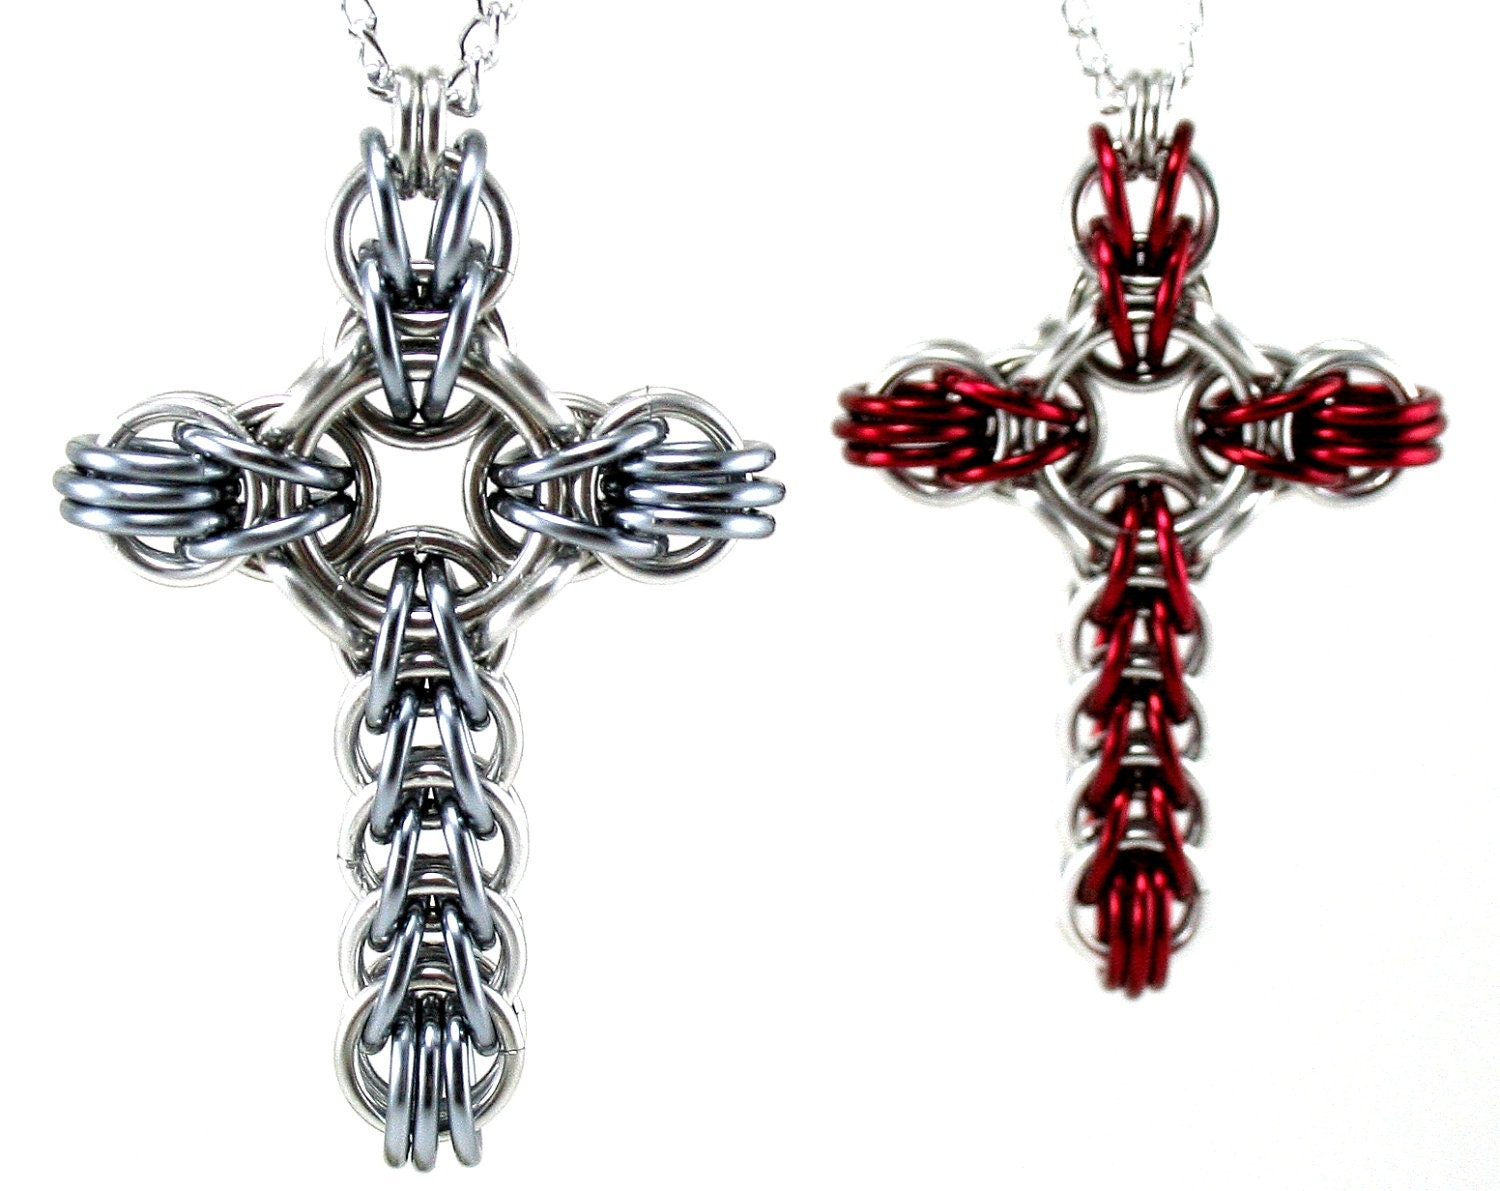 n bj necklace celtic trinity silver cross bling ssp pendant jewelry chain sterling